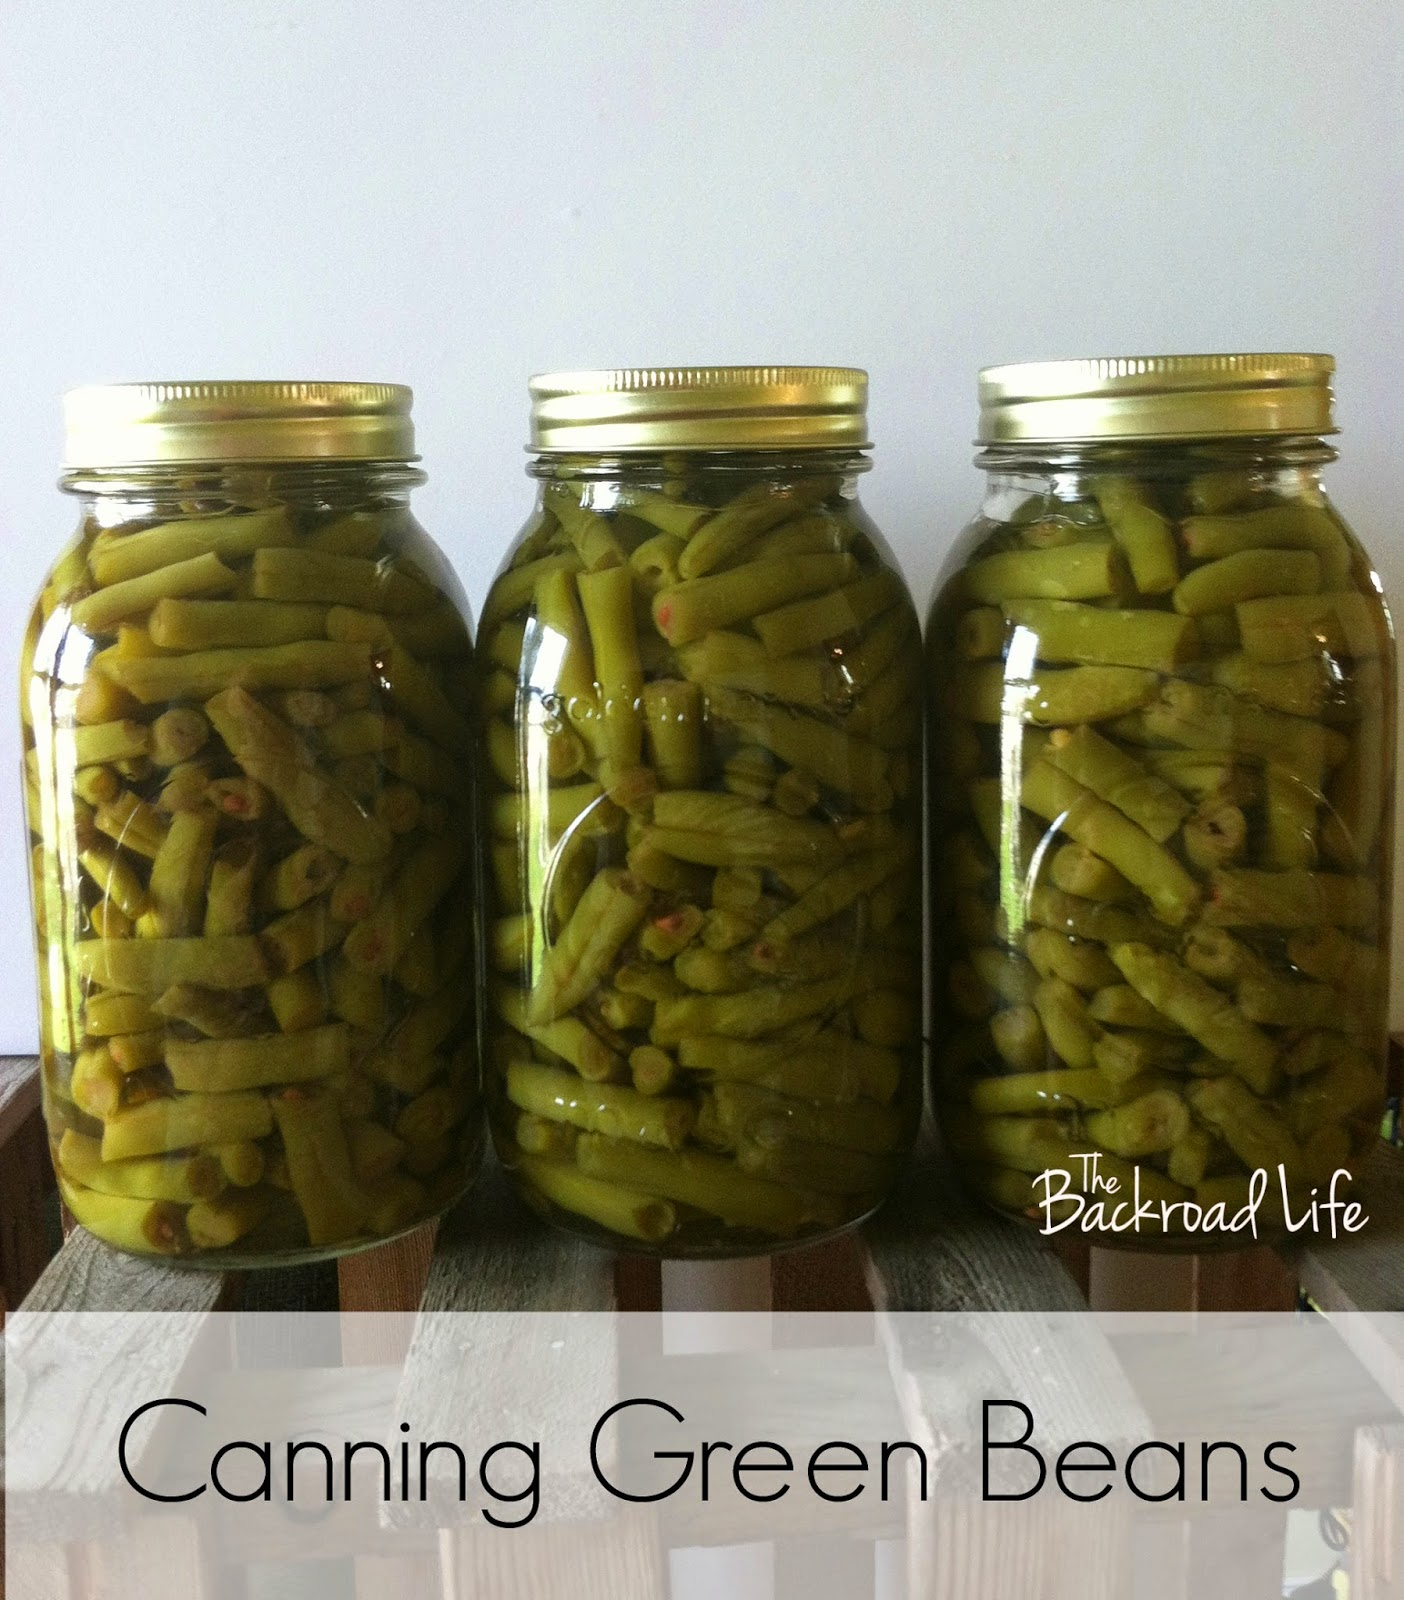 Canning green beans are a great way to enjoy produce well after the gardening season.